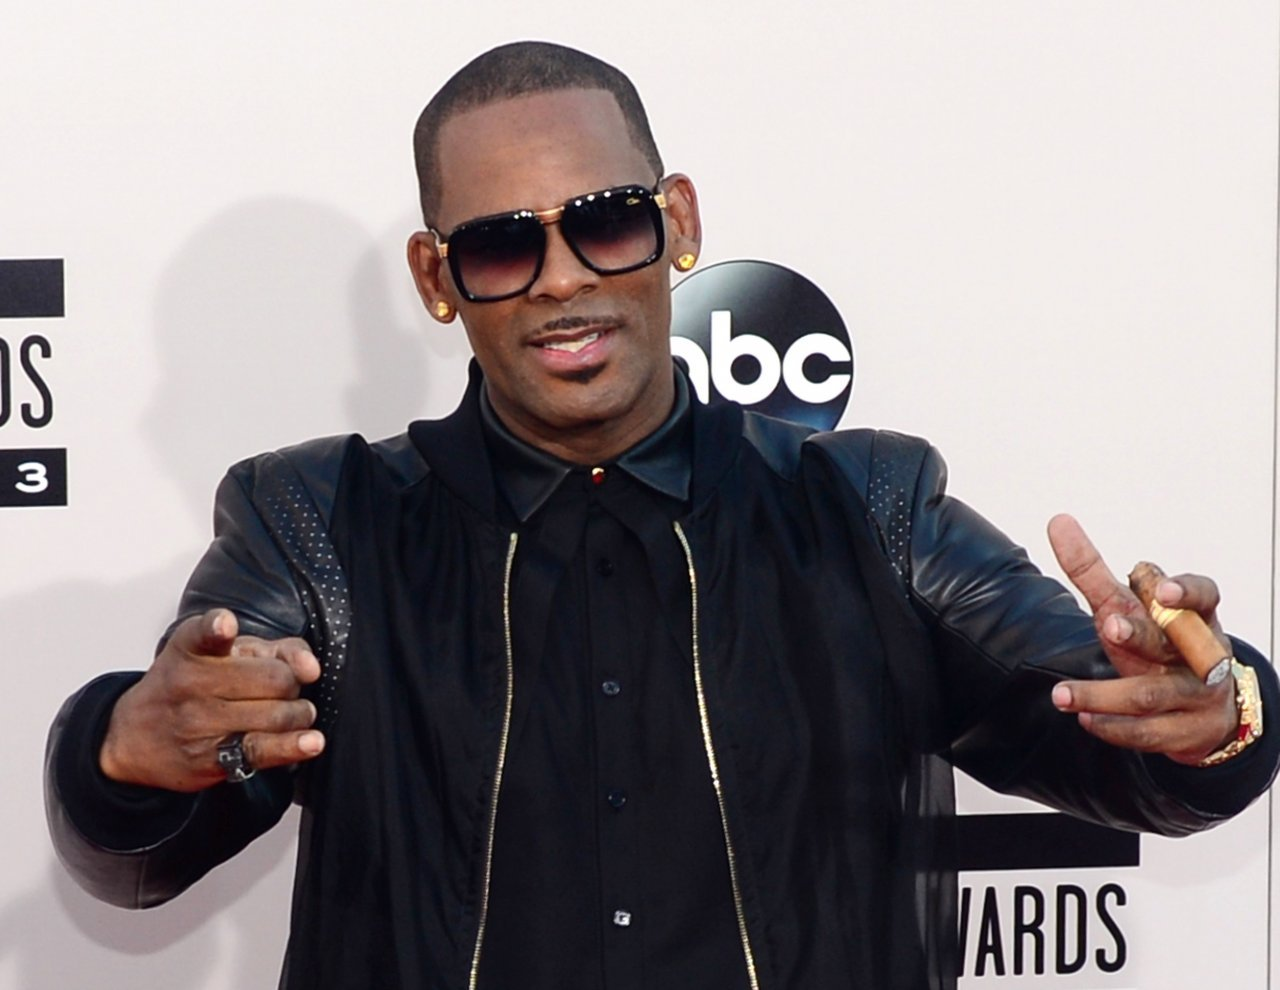 R&B star R. Kelly jailed on sex abuse charges. R&B superstar R. Kelly was due in court Saturday for a bond hearing after prosecutors charged him with 10